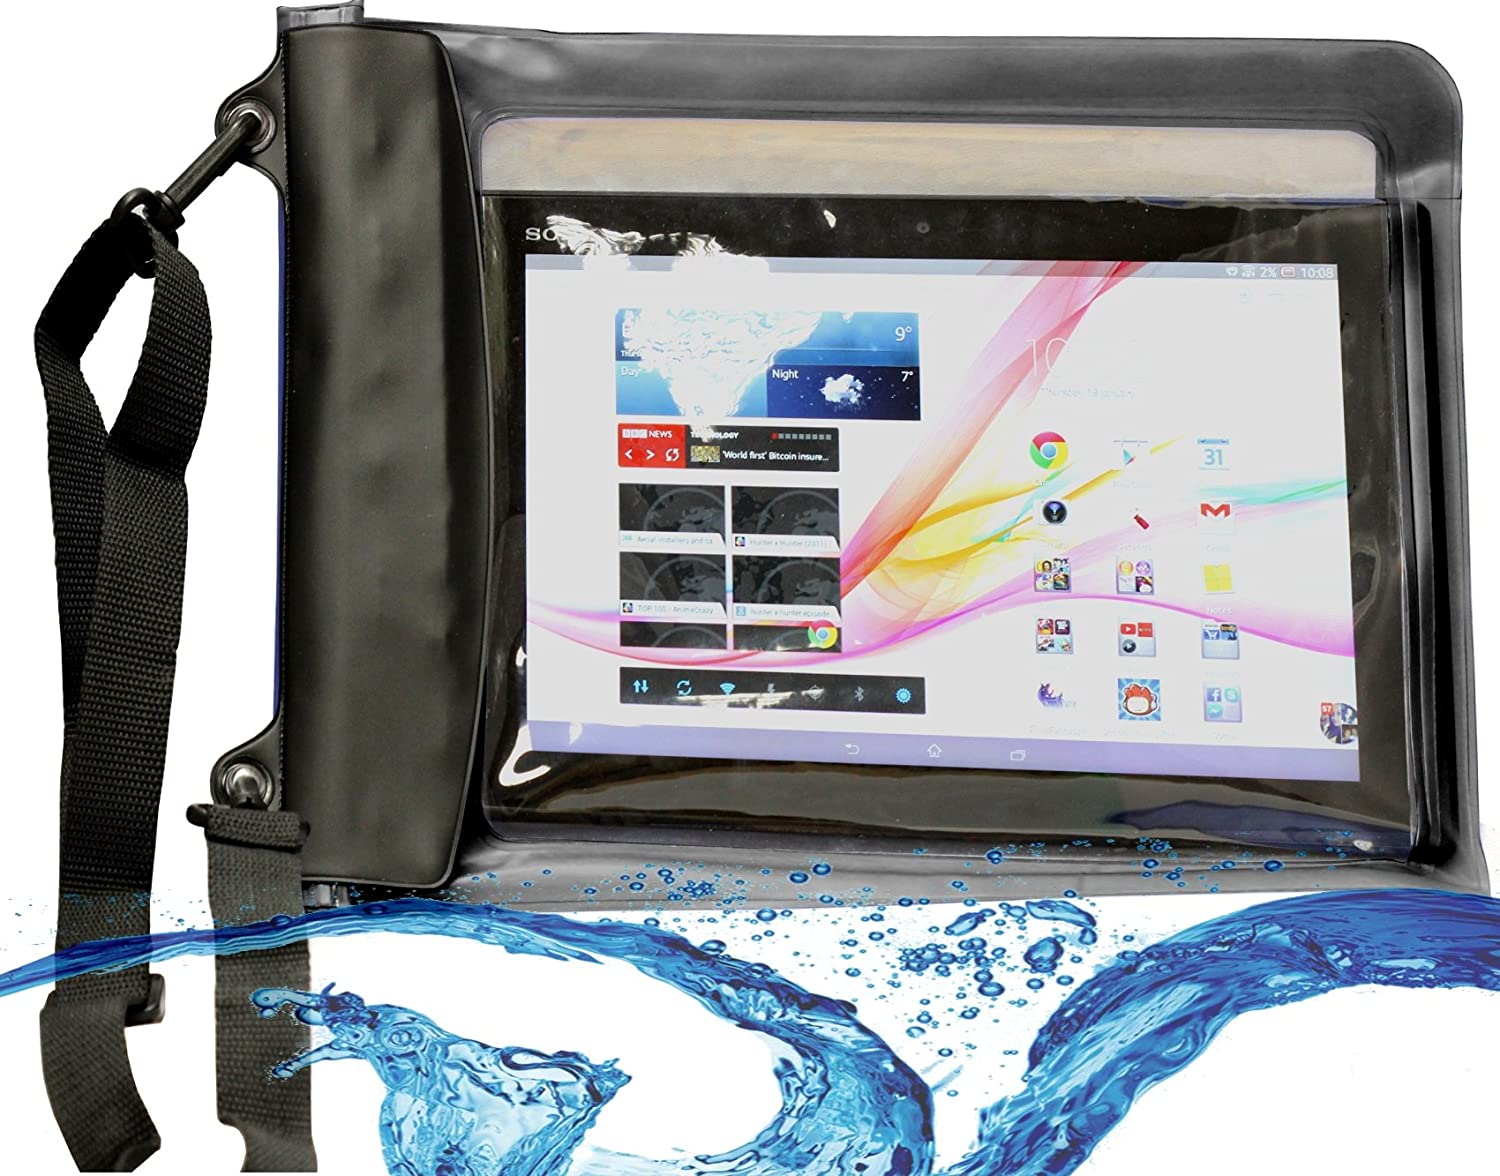 MiTAB Black Waterproof Case / Cover For 10 Inch Tablets Including The Lenovo Yoga Tablet 10 / Lenovo IDEATAB S6000 TABLET / Lenovo Miix 10 / Lenovo ...